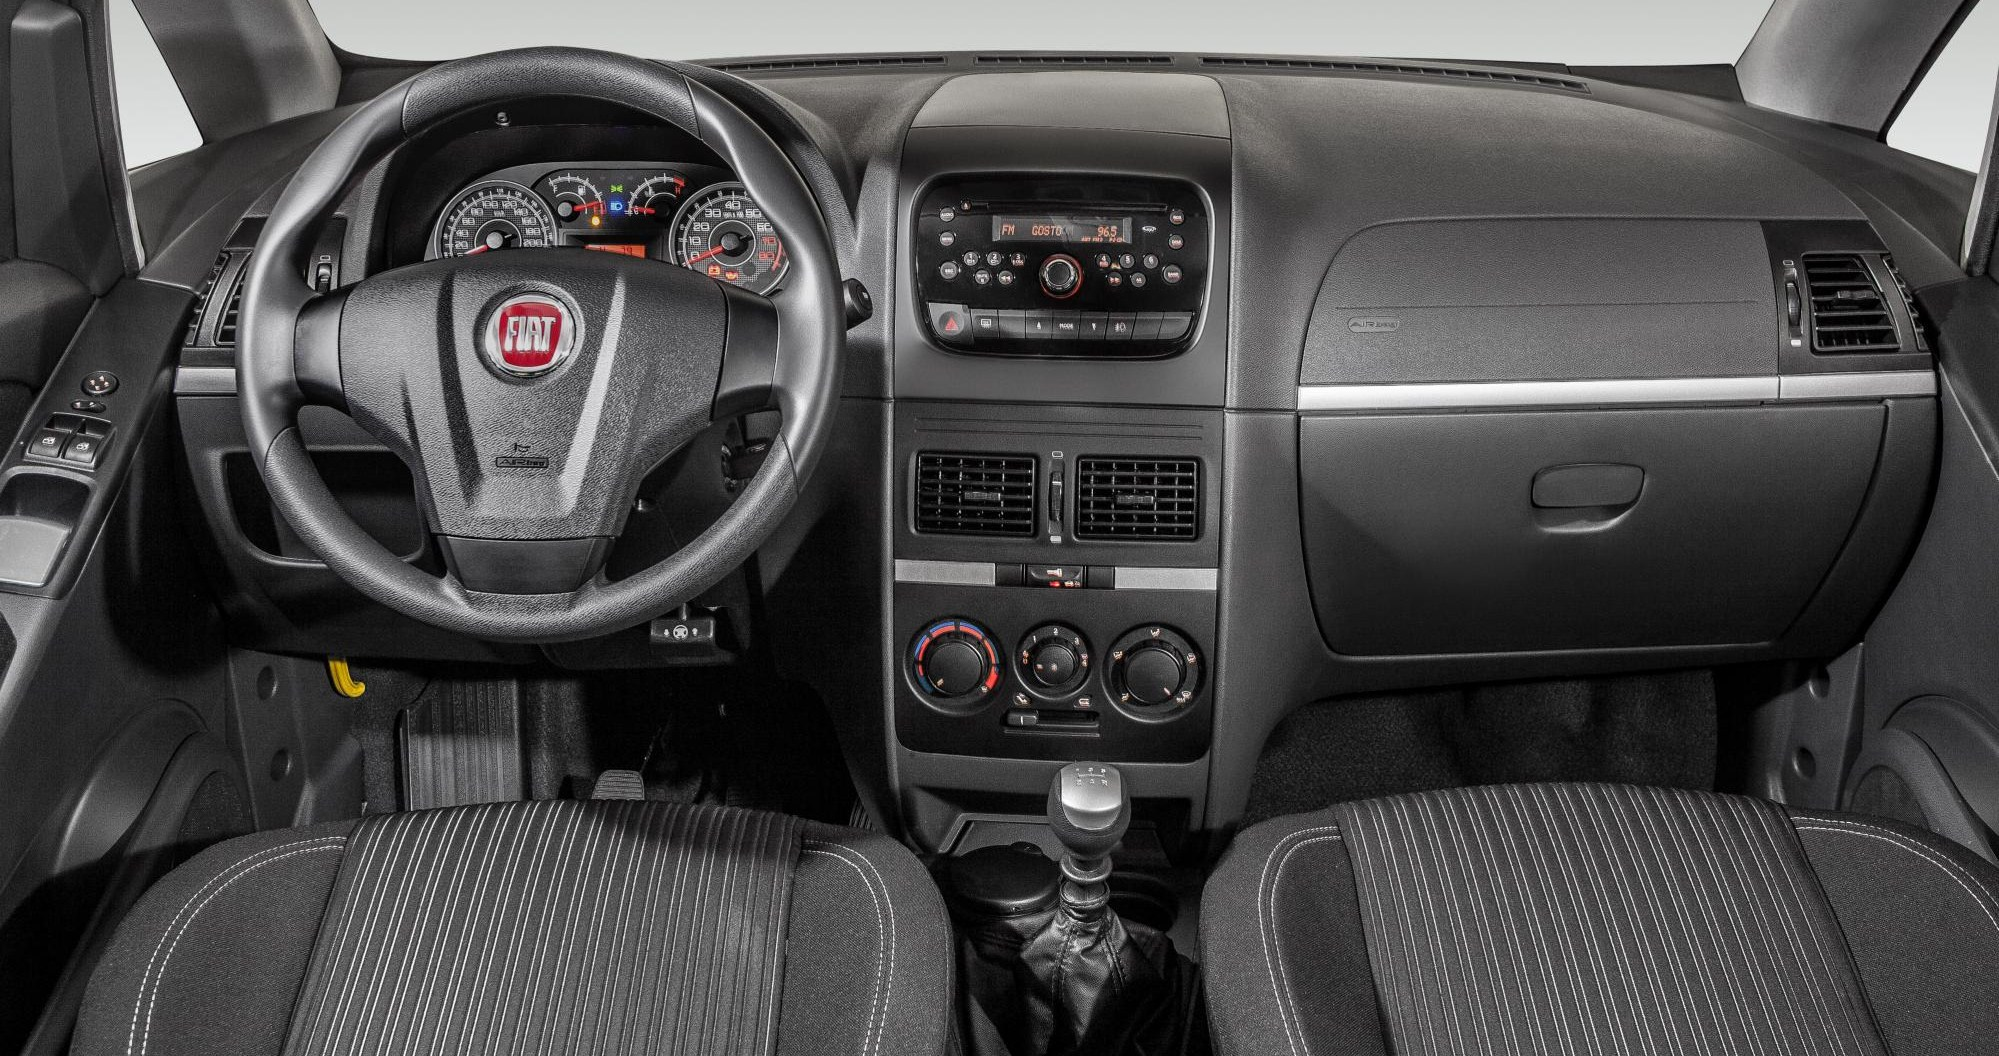 Nuevo dise o interior para fiat idea automotiva for Precio fiat idea attractive 2013